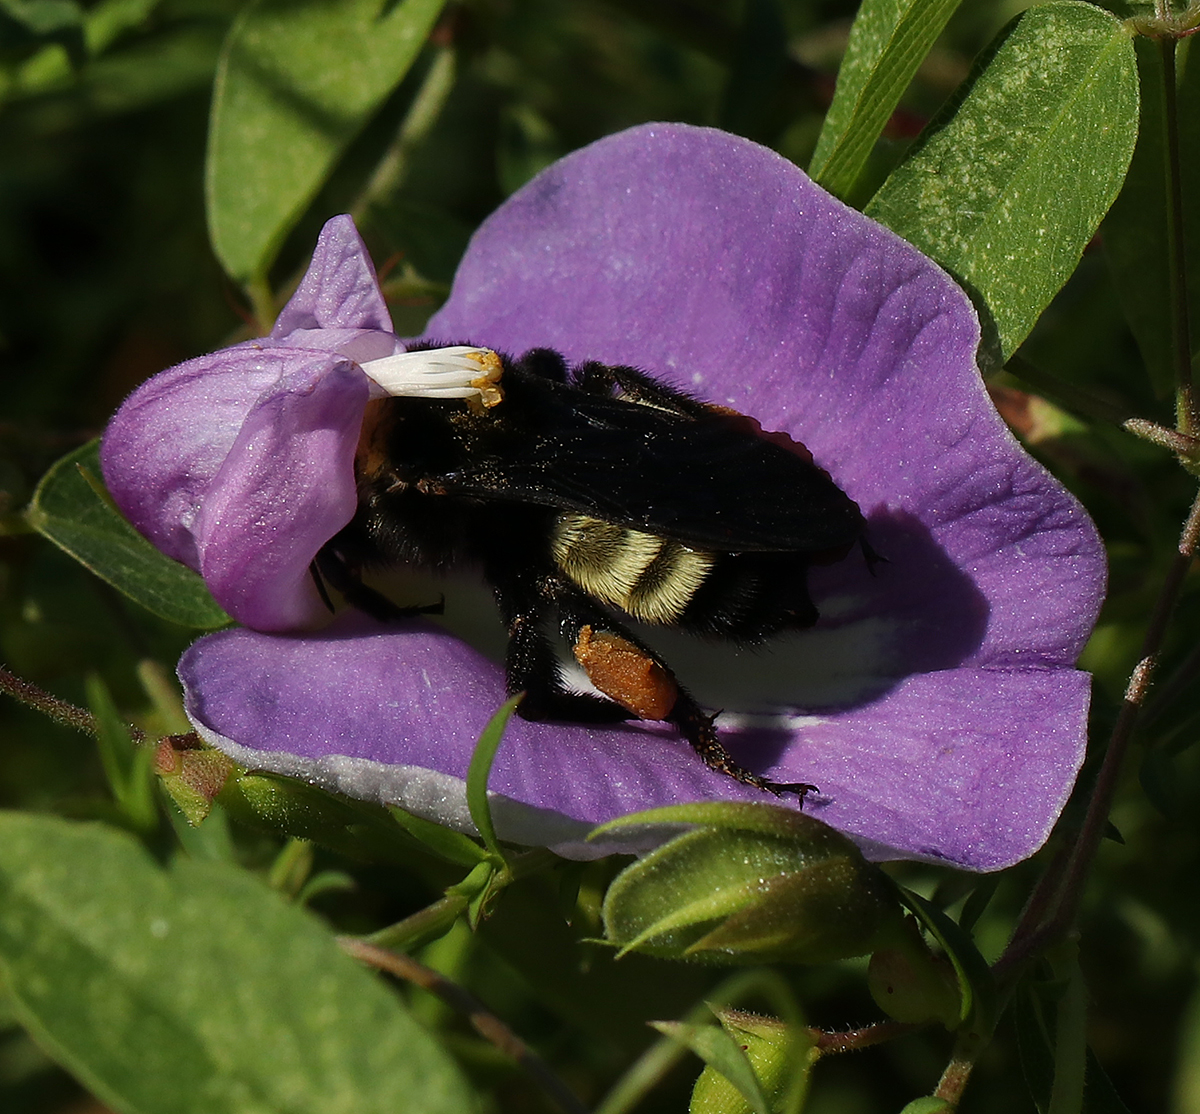 American bumble bee on spurred butterfly pea (Centrosema virginianum).